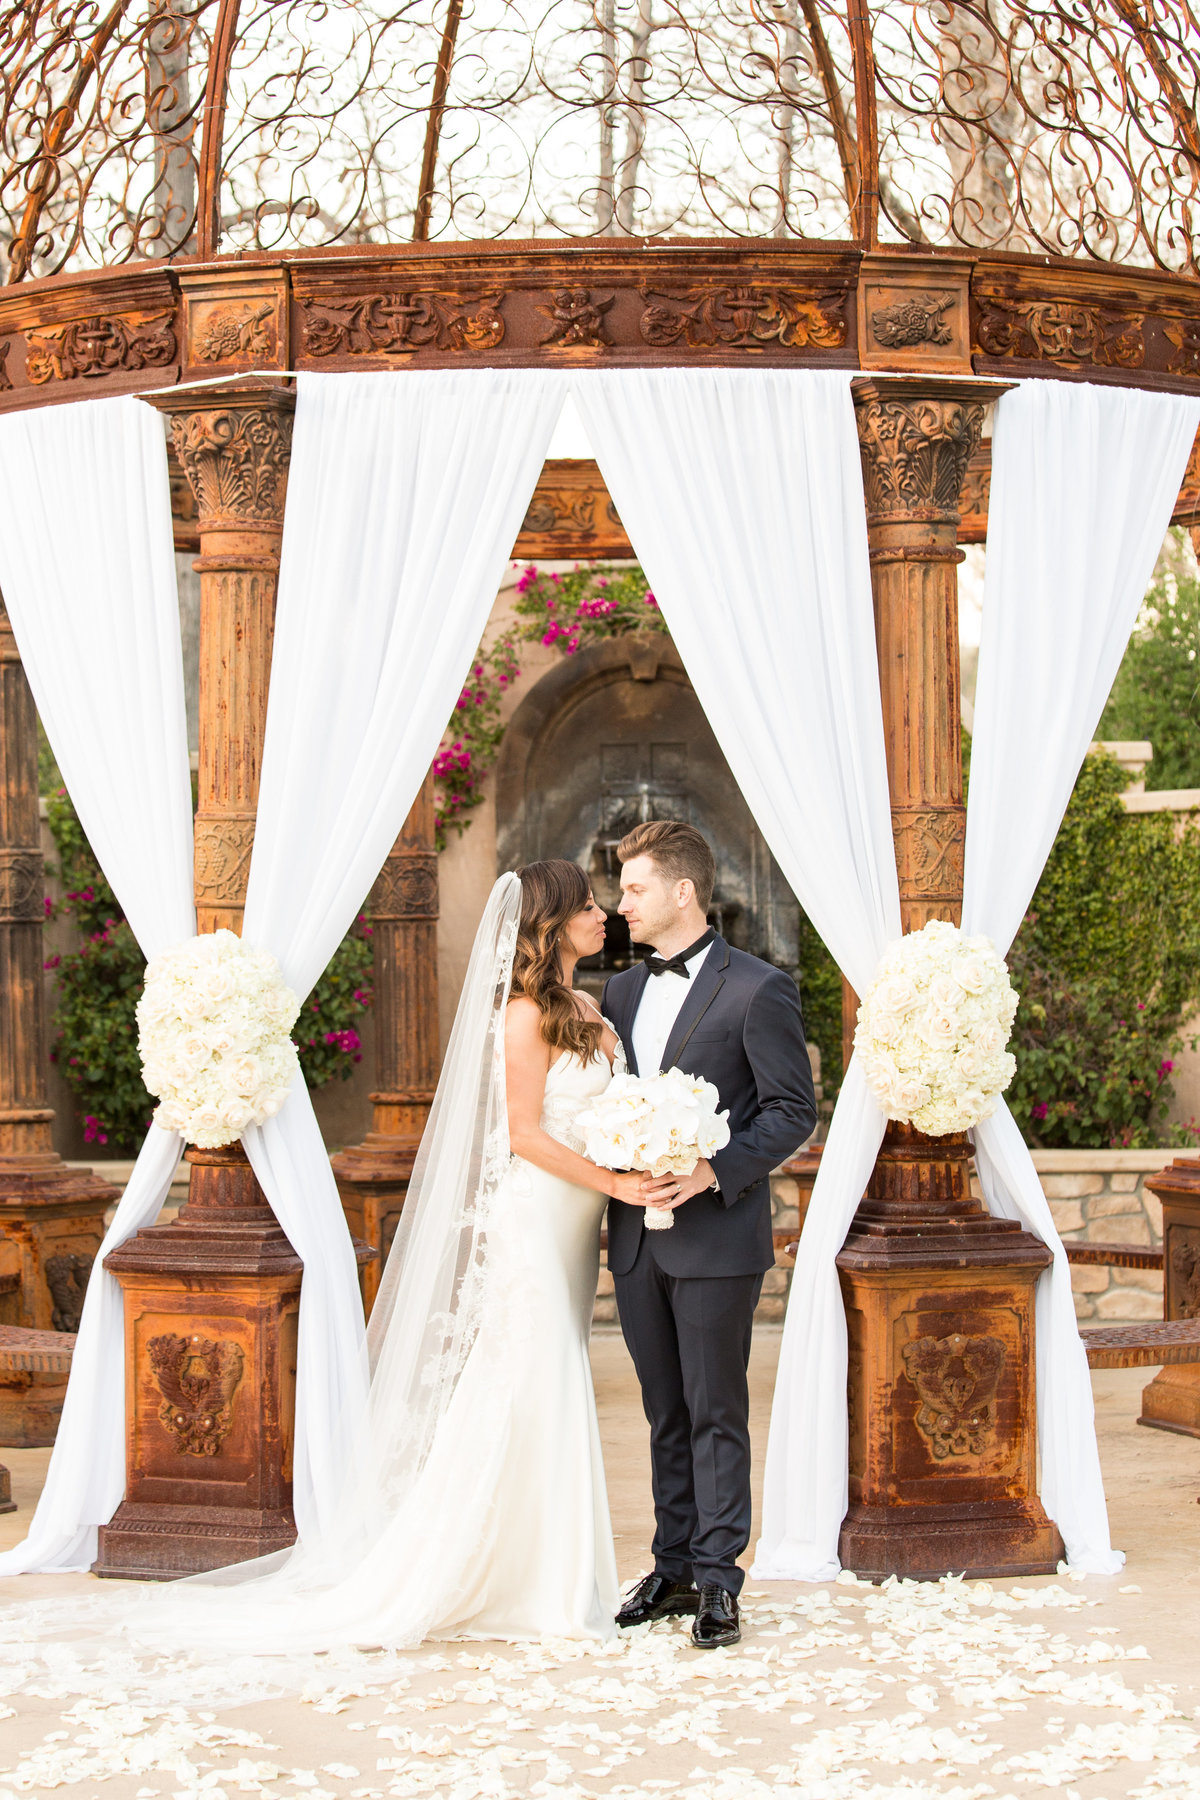 Stefani_Ciotti_Photography_Los_Angeles_Orange_County_California_Wedding_Photographer-3119